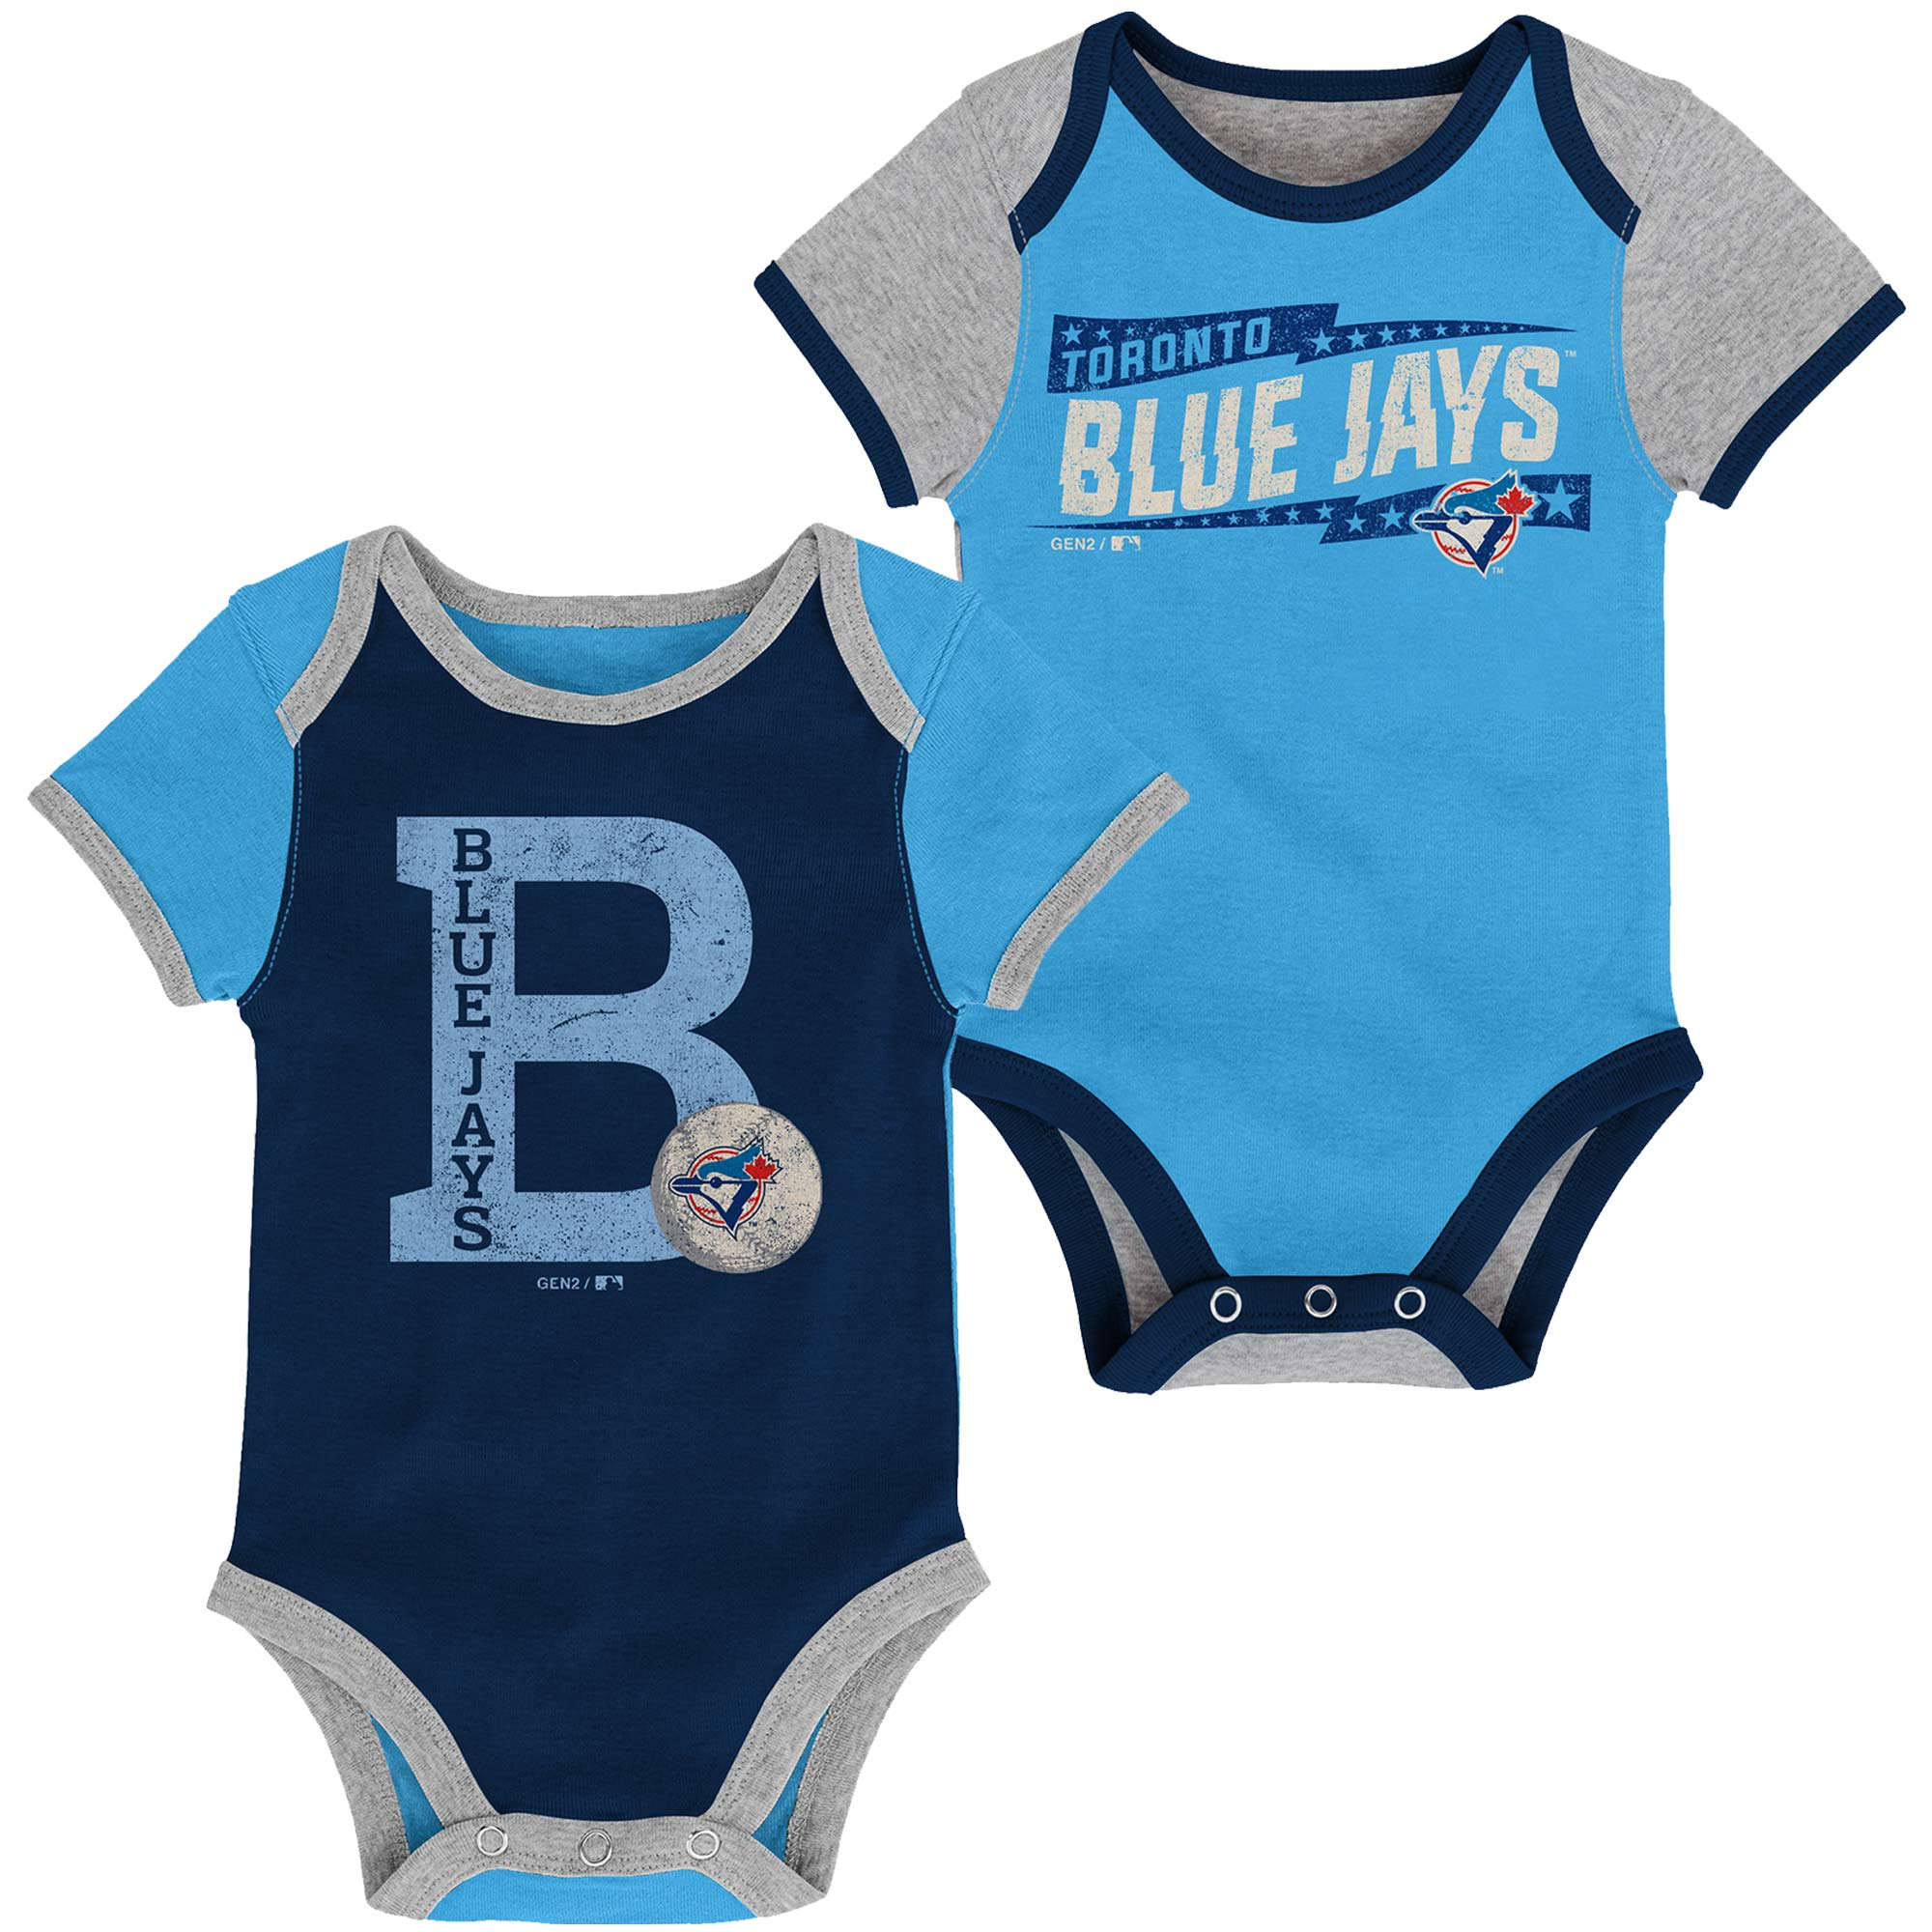 Toronto Blue Jays Newborn Baseball Star Two-Pack Bodysuit Set - Royal/Light Blue